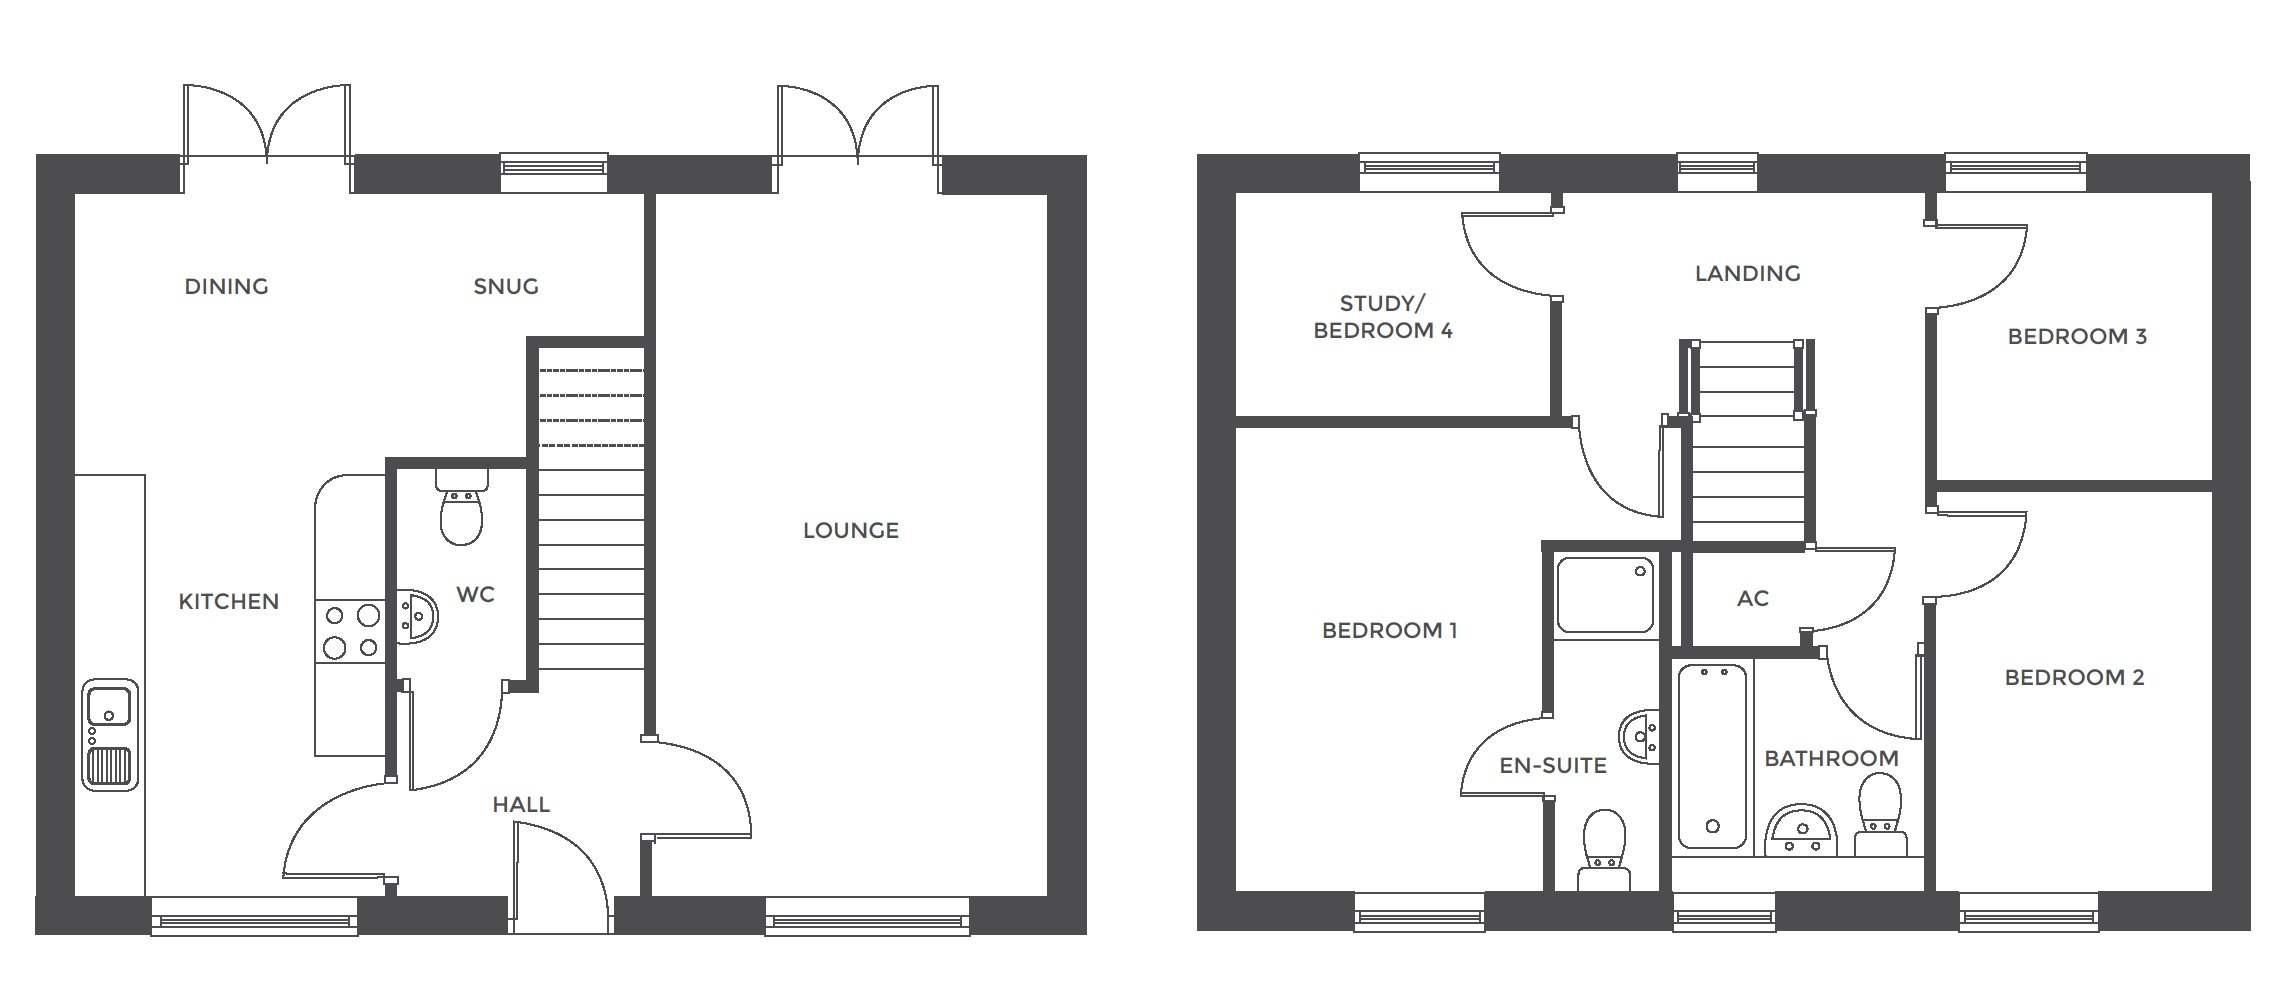 Repington Walk, Plot 2 floor plan